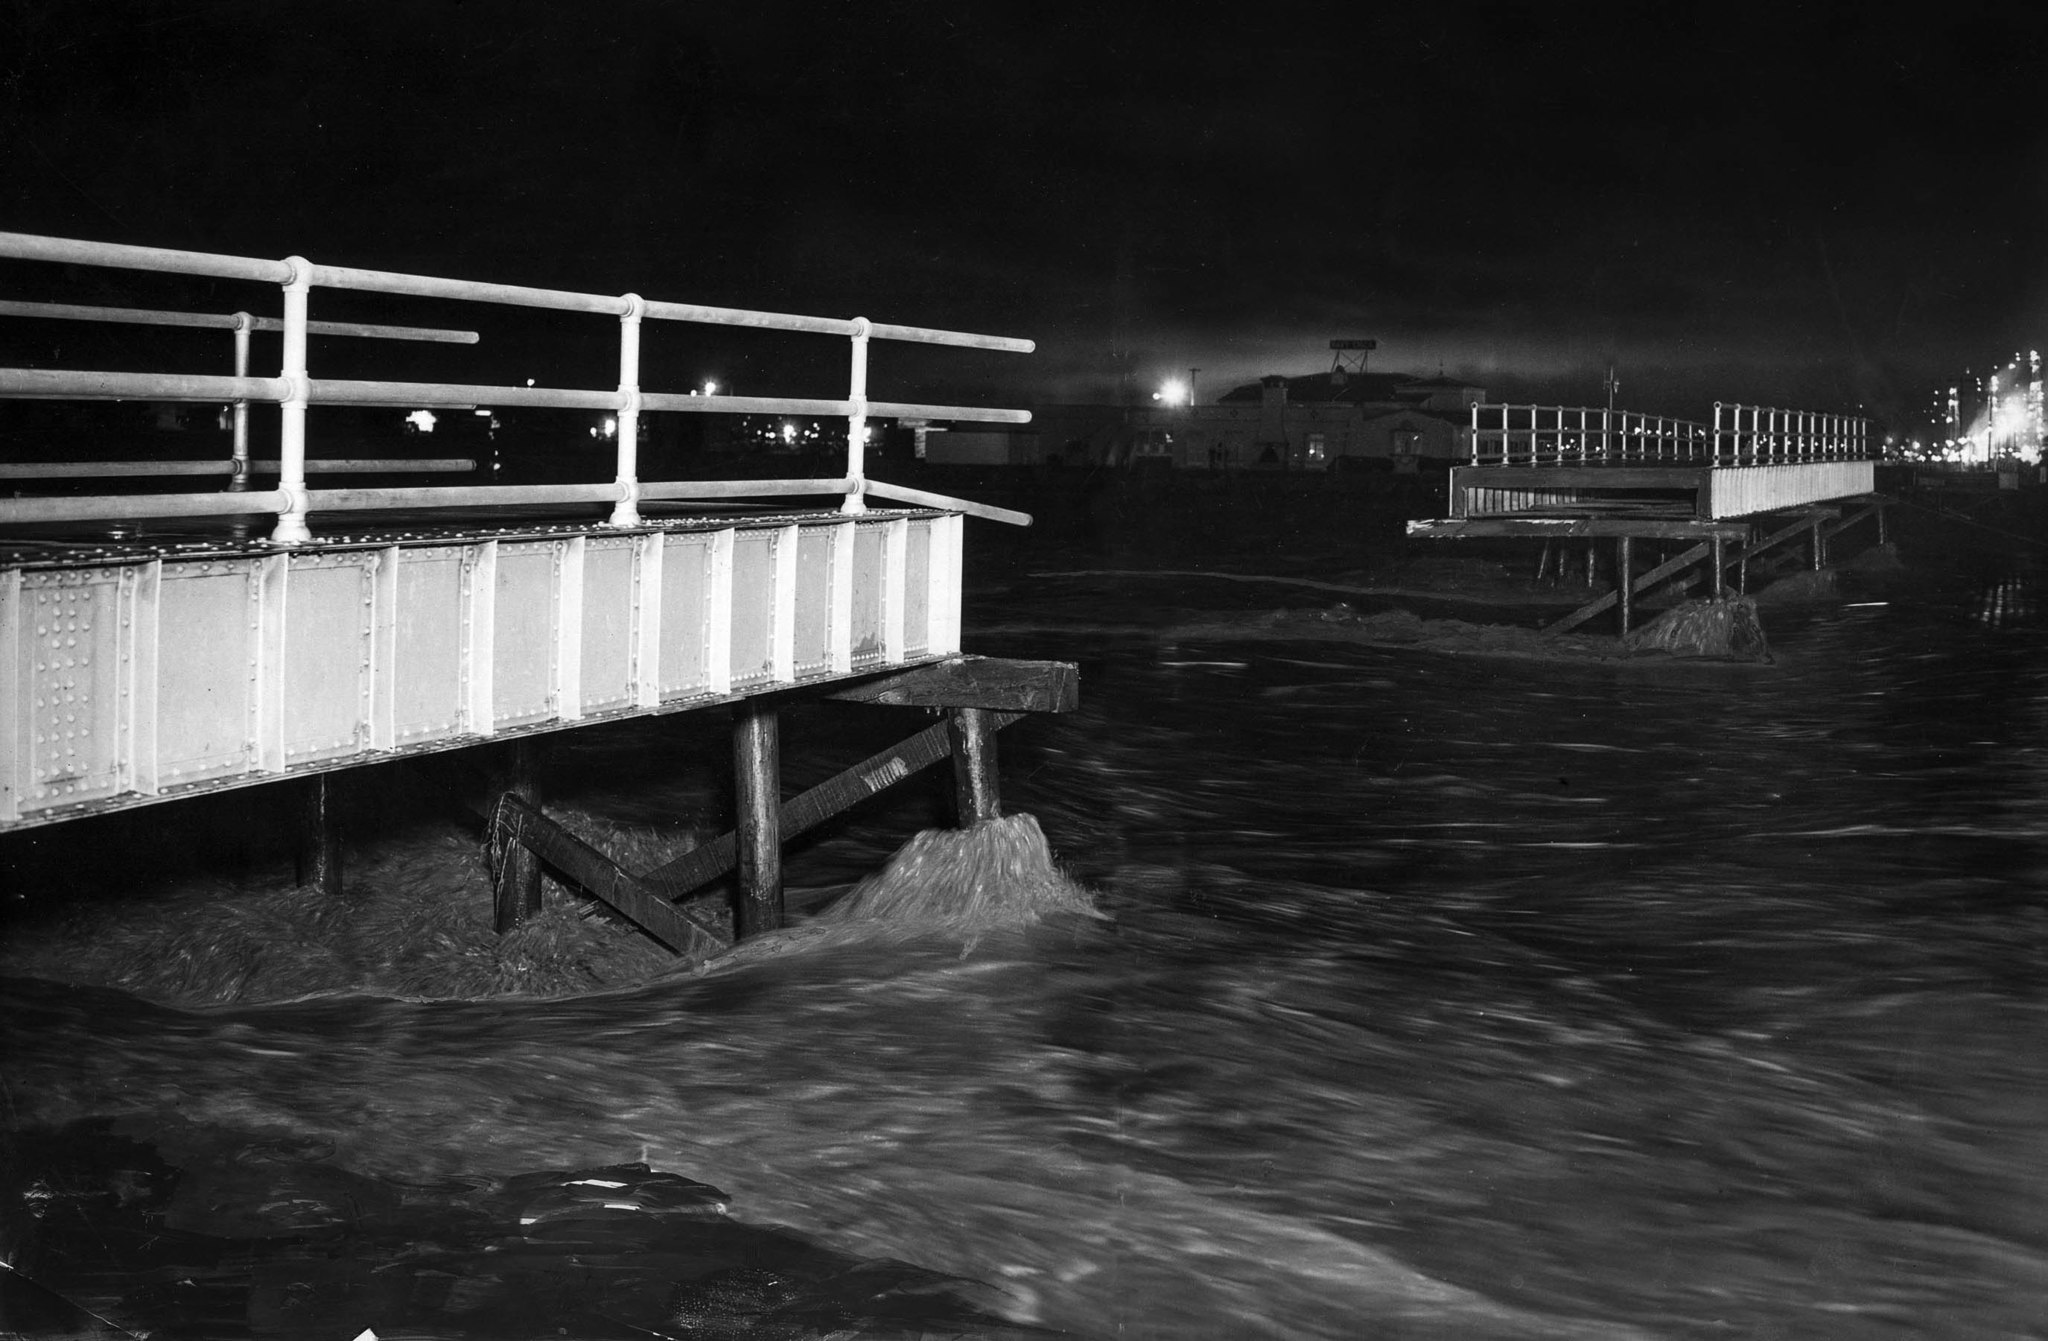 March 2, 1938: About ten were swept into the water when Third Street pedestrian bridge in Long Beach